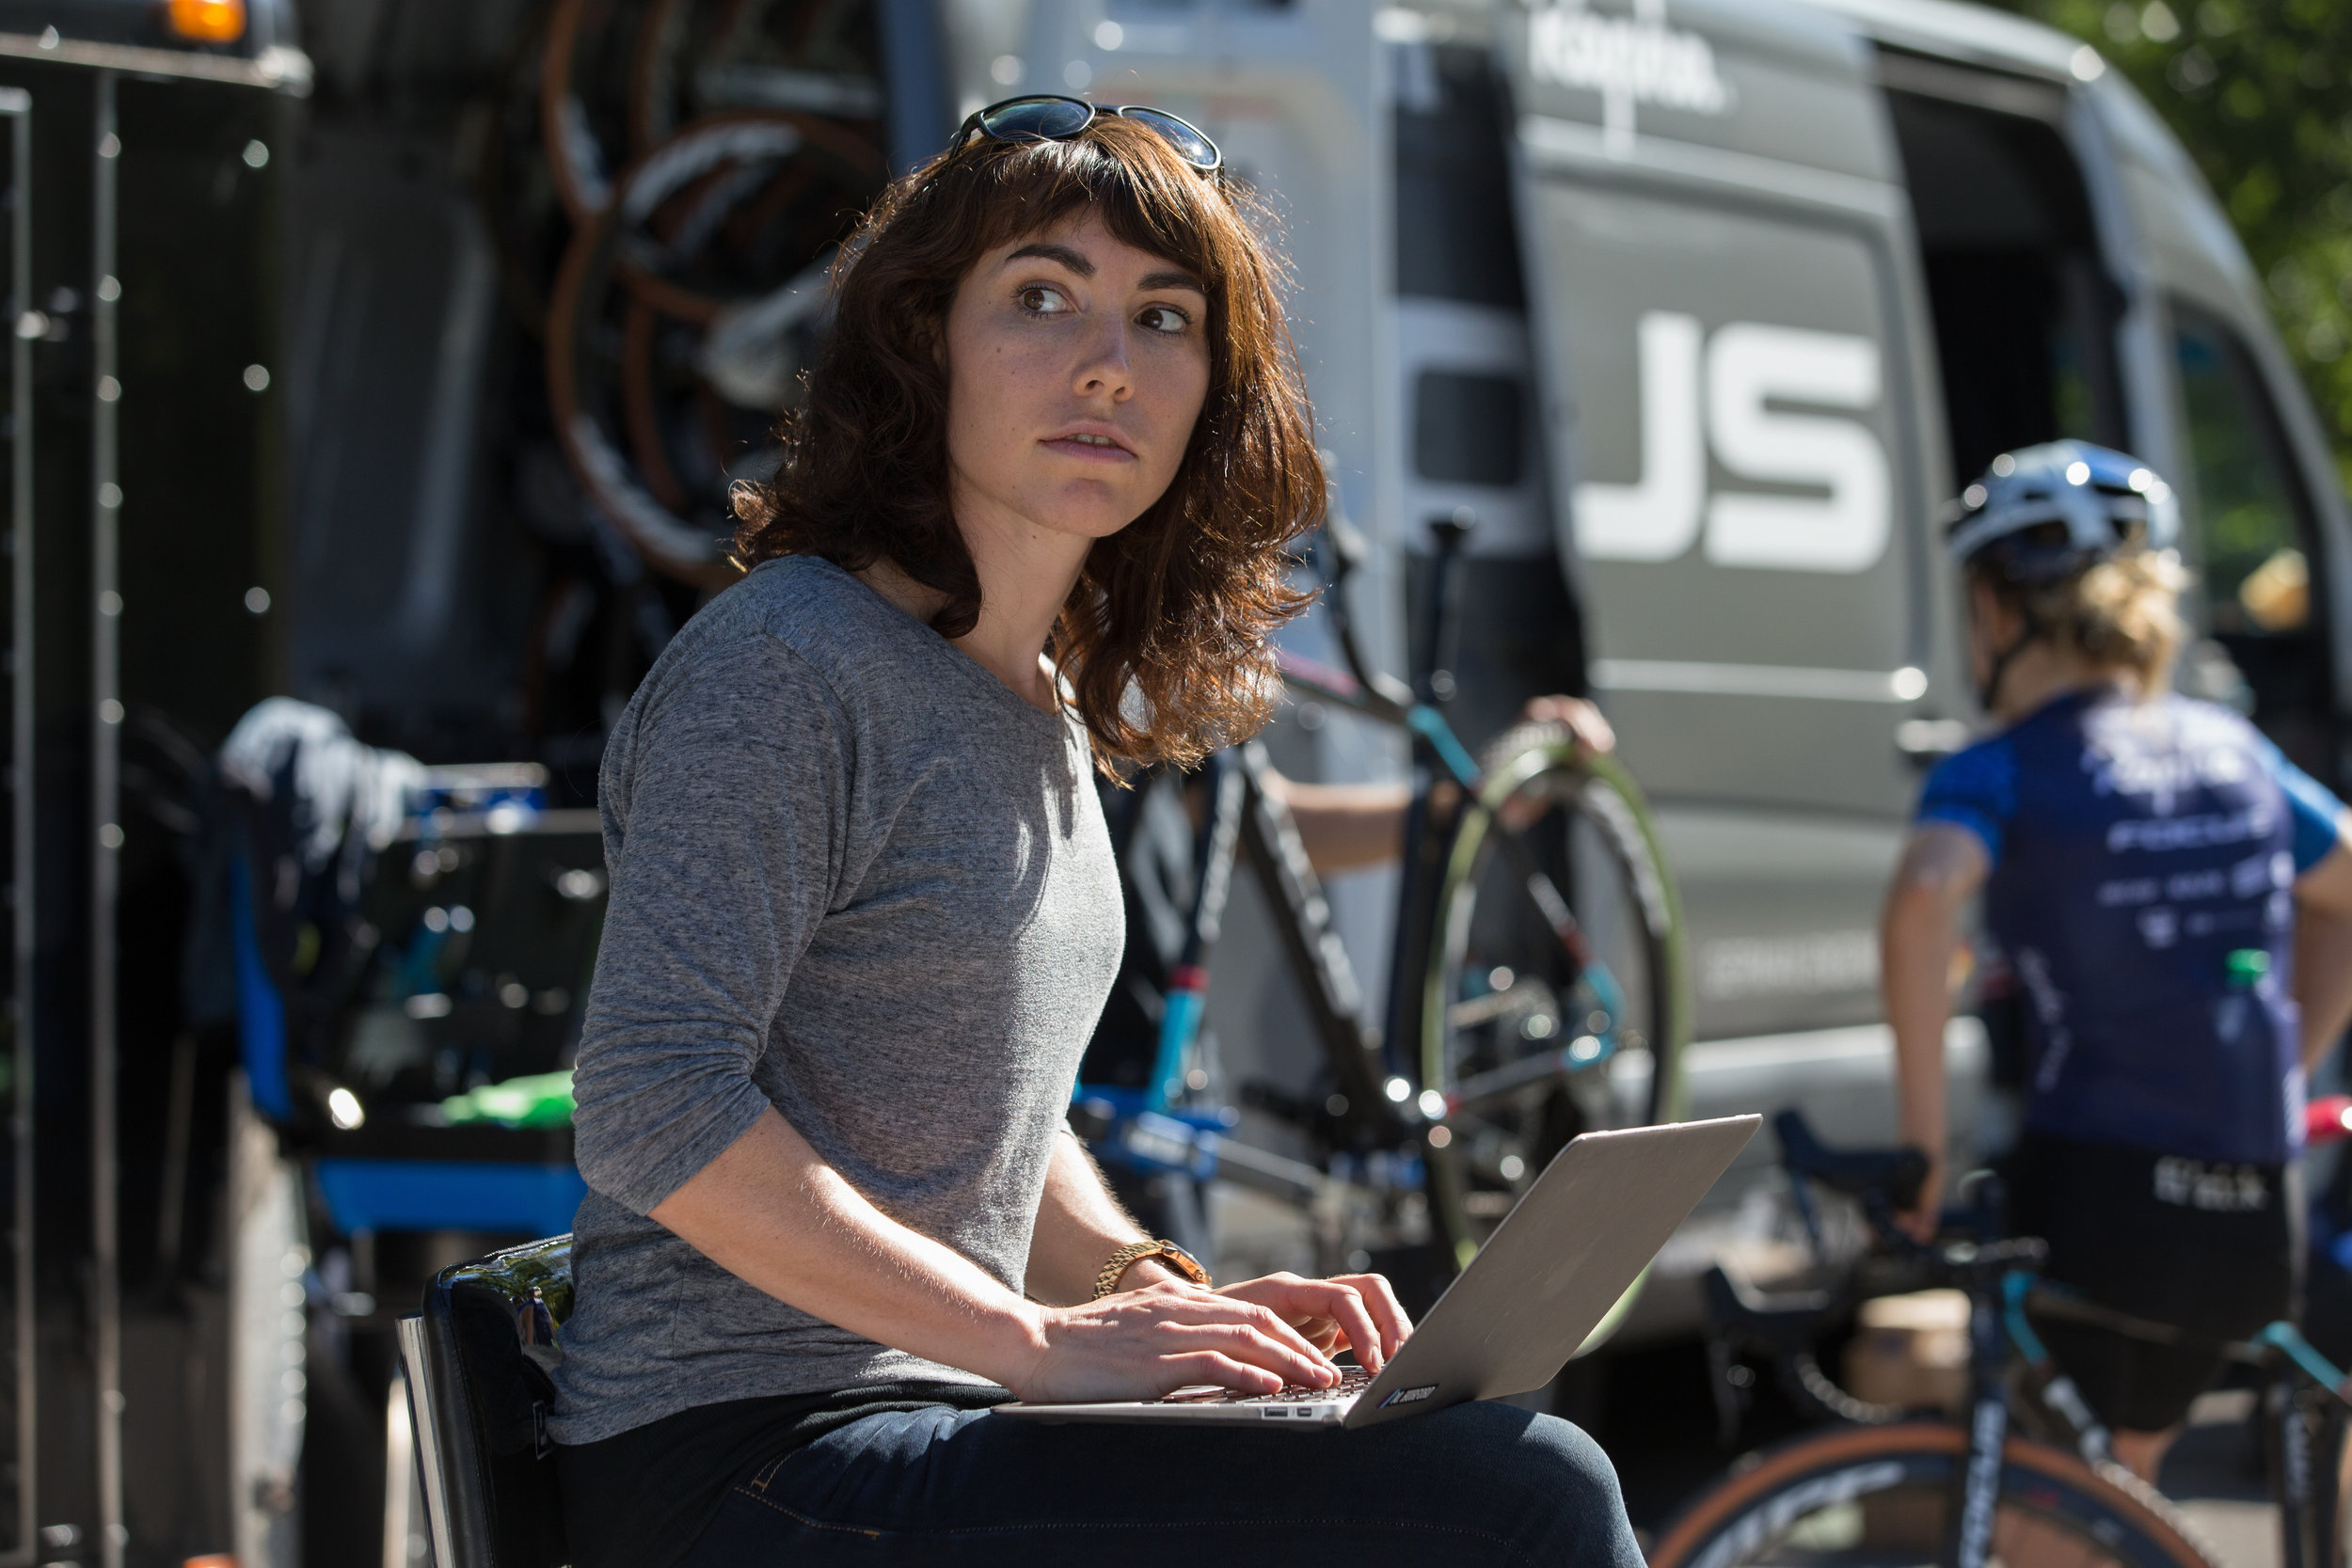 Molly working simultaneously on being a reporter and being a team manager, at a race with team Aspire Racing. Photo by Wil Matthews